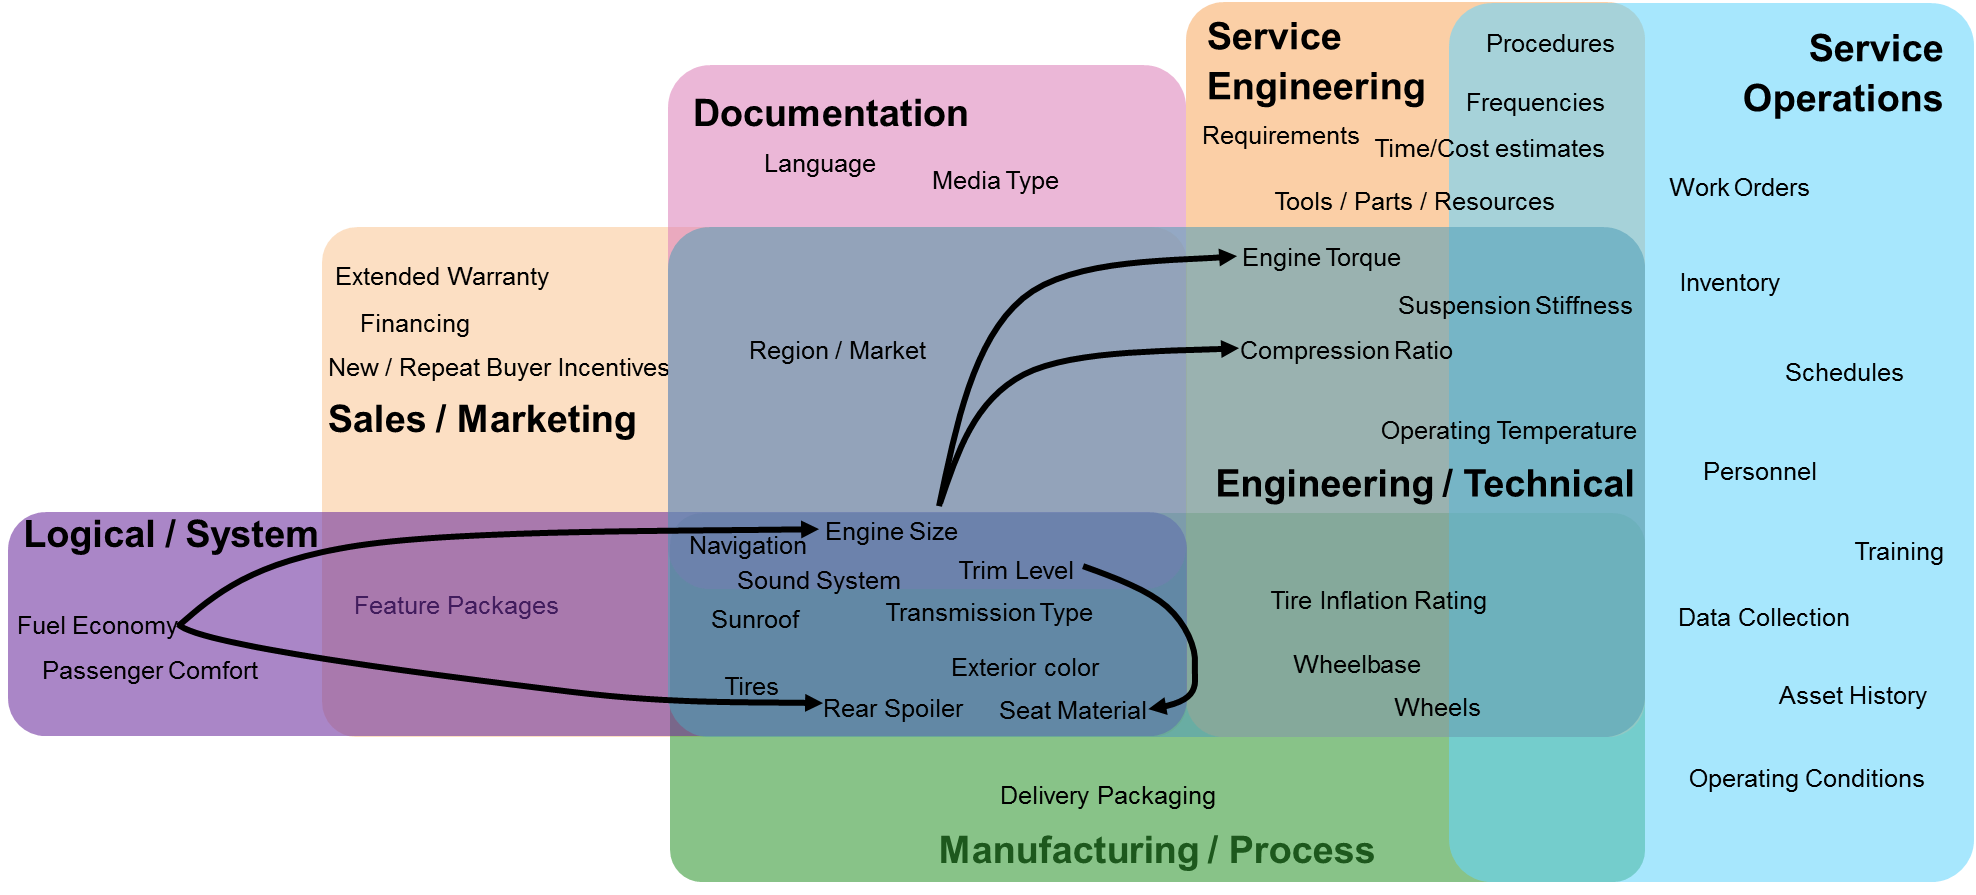 configurator for service variability roles.png